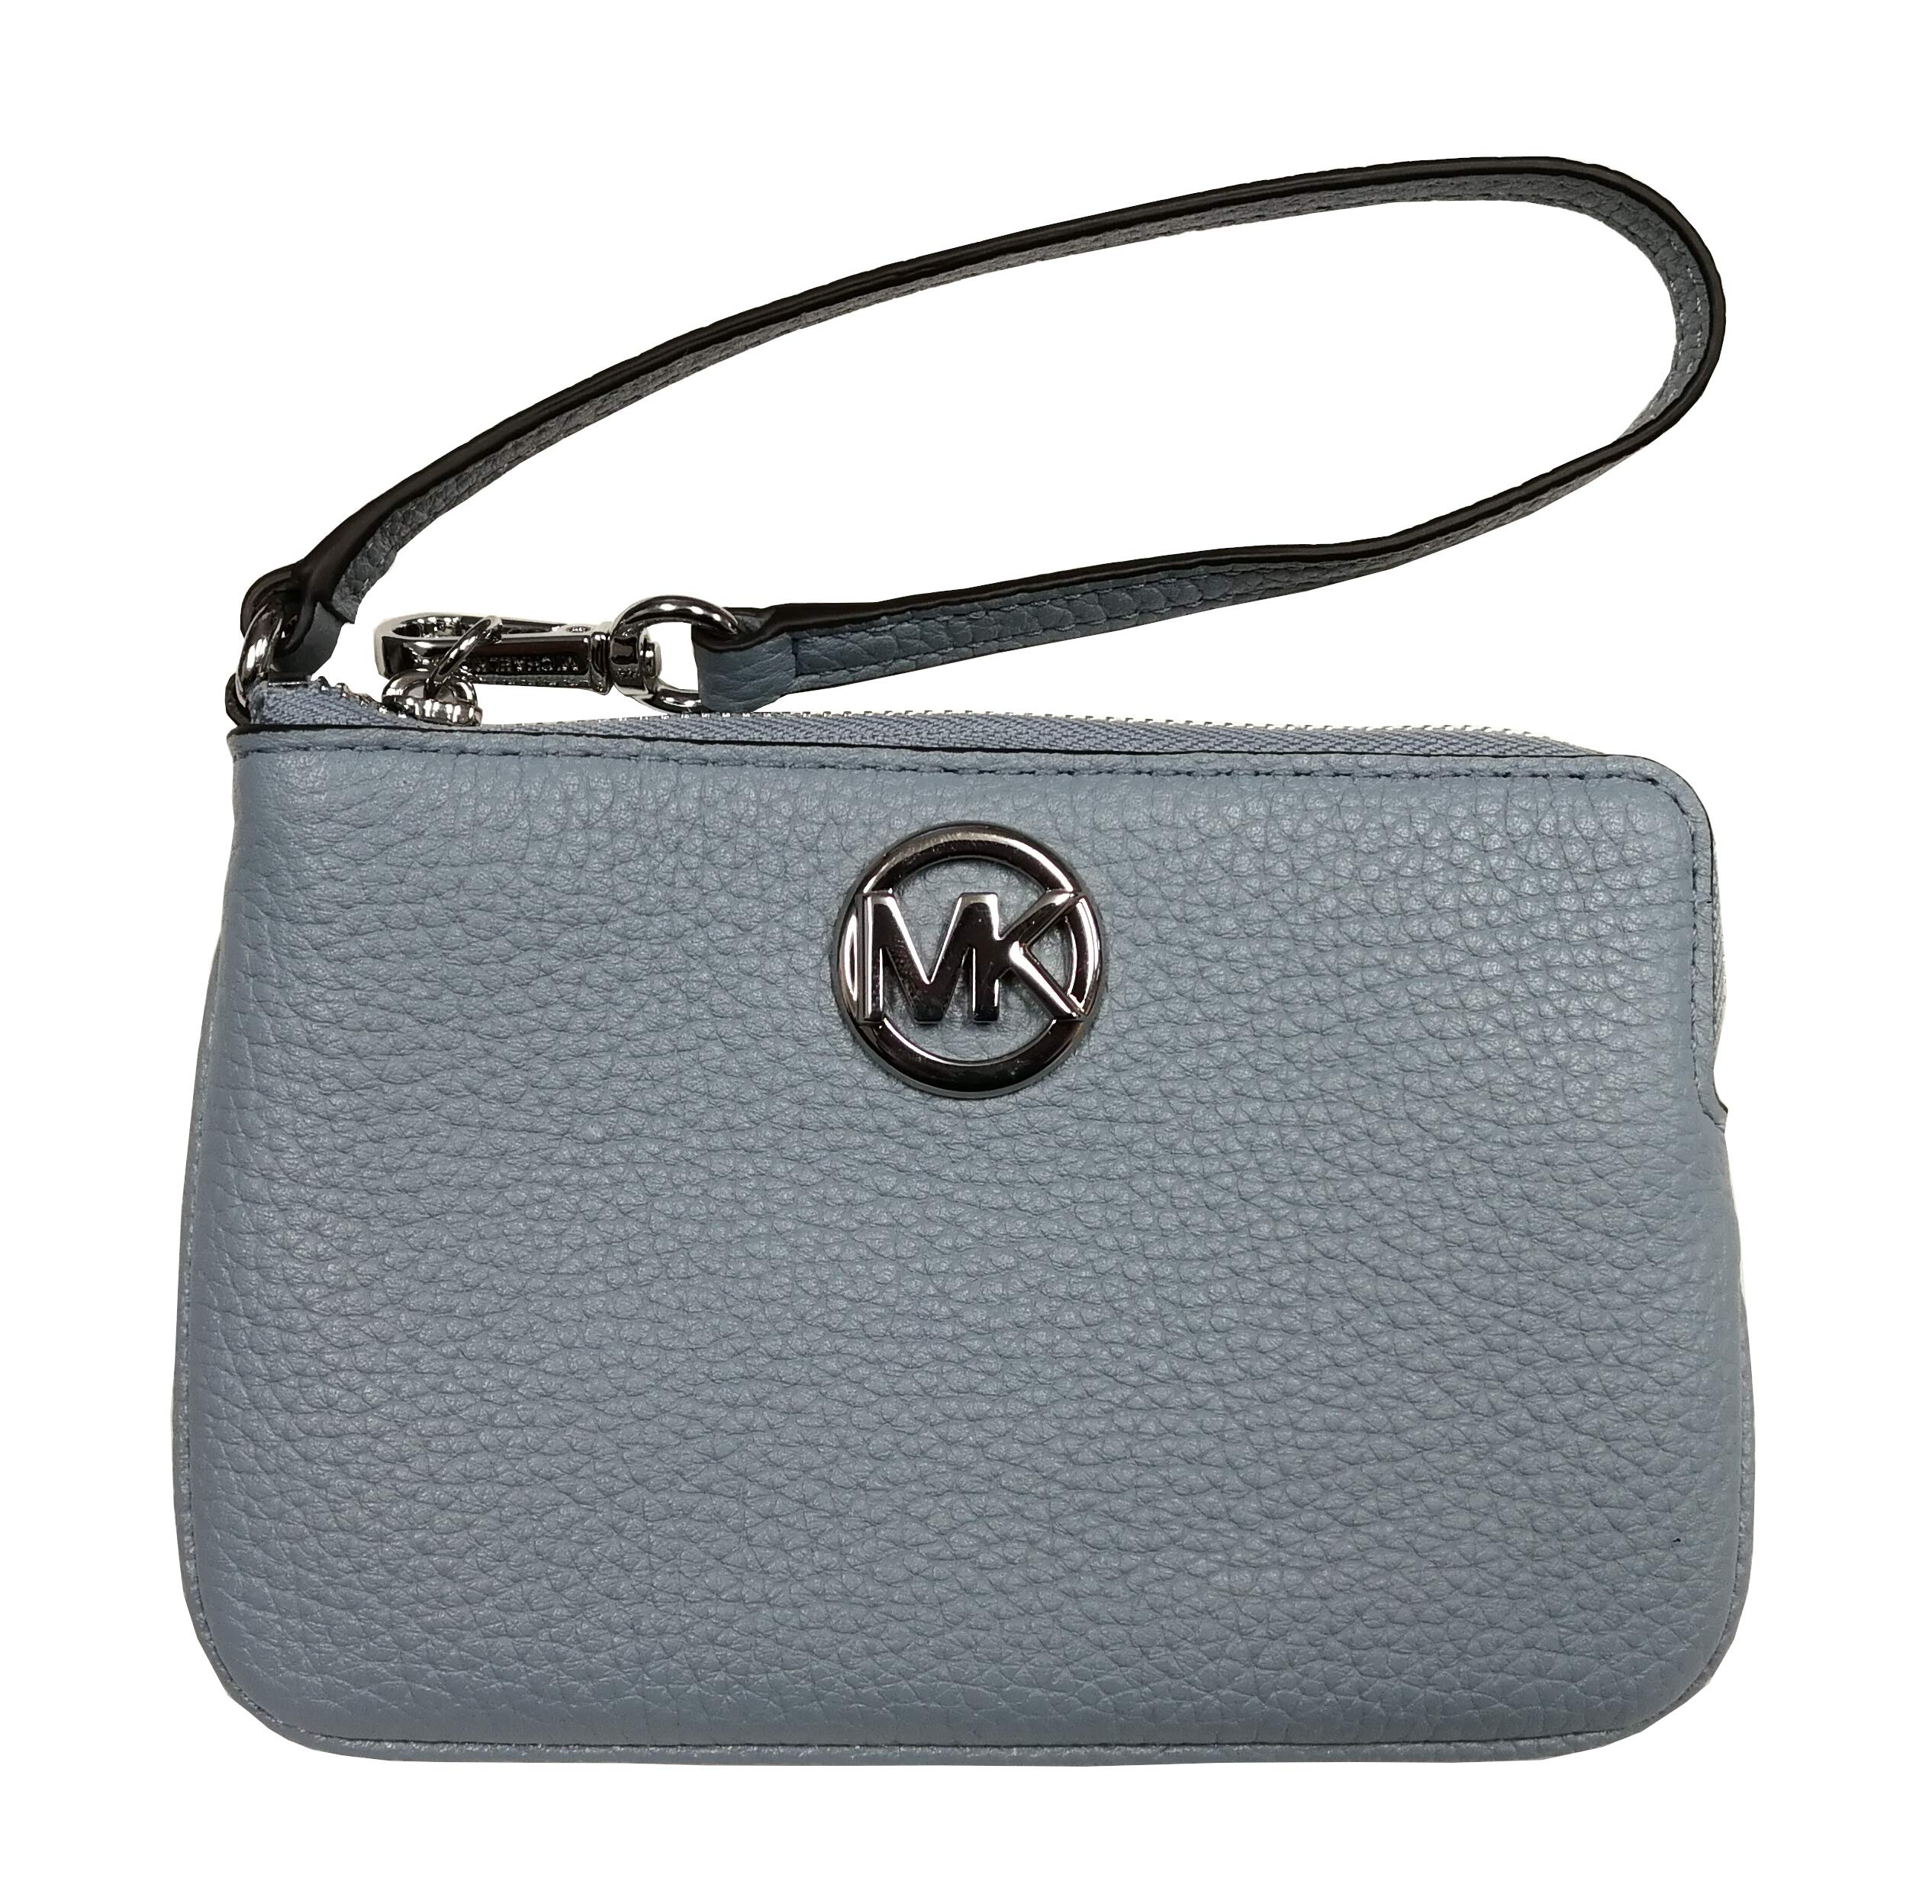 Michael Kors Fulton Medium Top Zip Wristlet Pale Blue